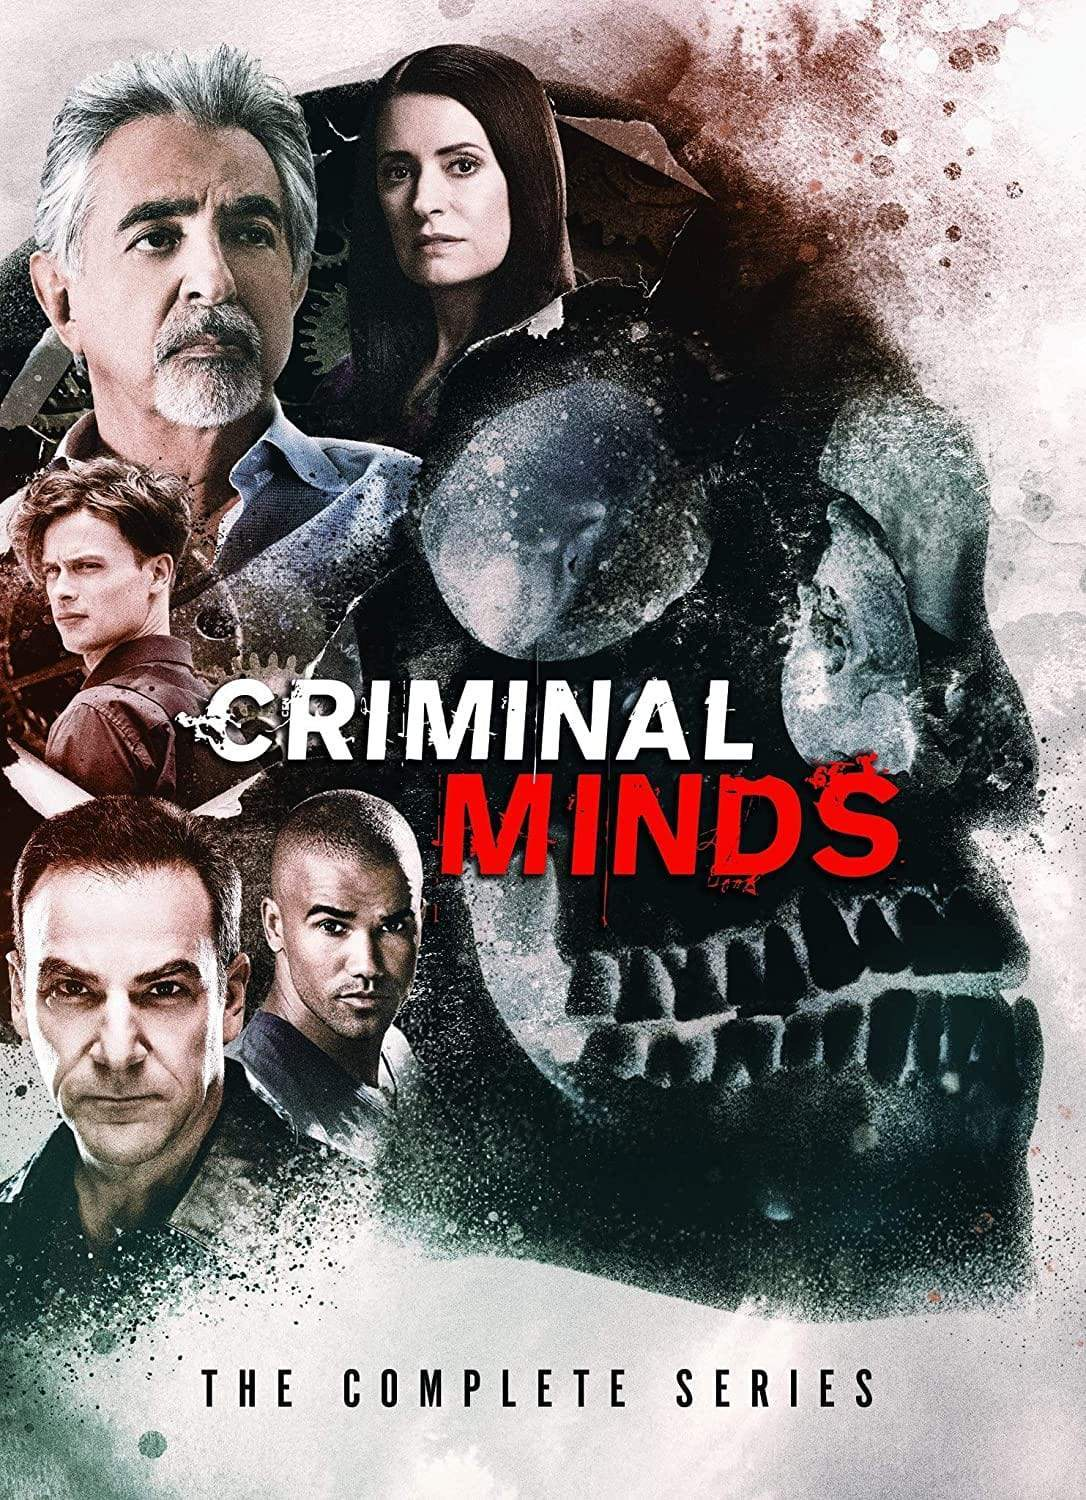 Criminal Minds DVD Seasons 1-15 Set Paramount Home Entertainment DVDs & Blu-ray Discs > DVDs